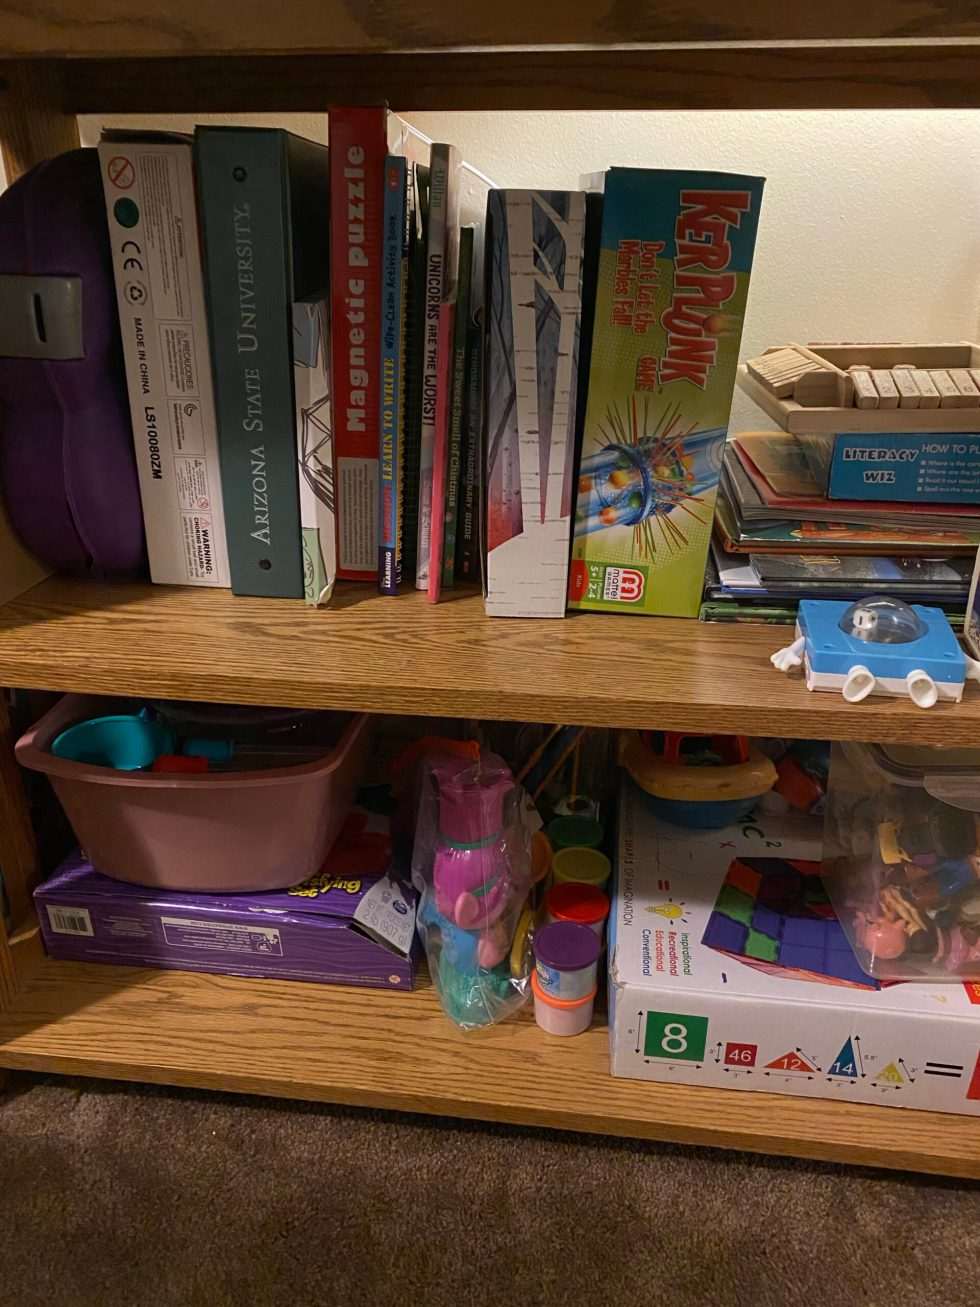 Organized childrens books, toys and games.